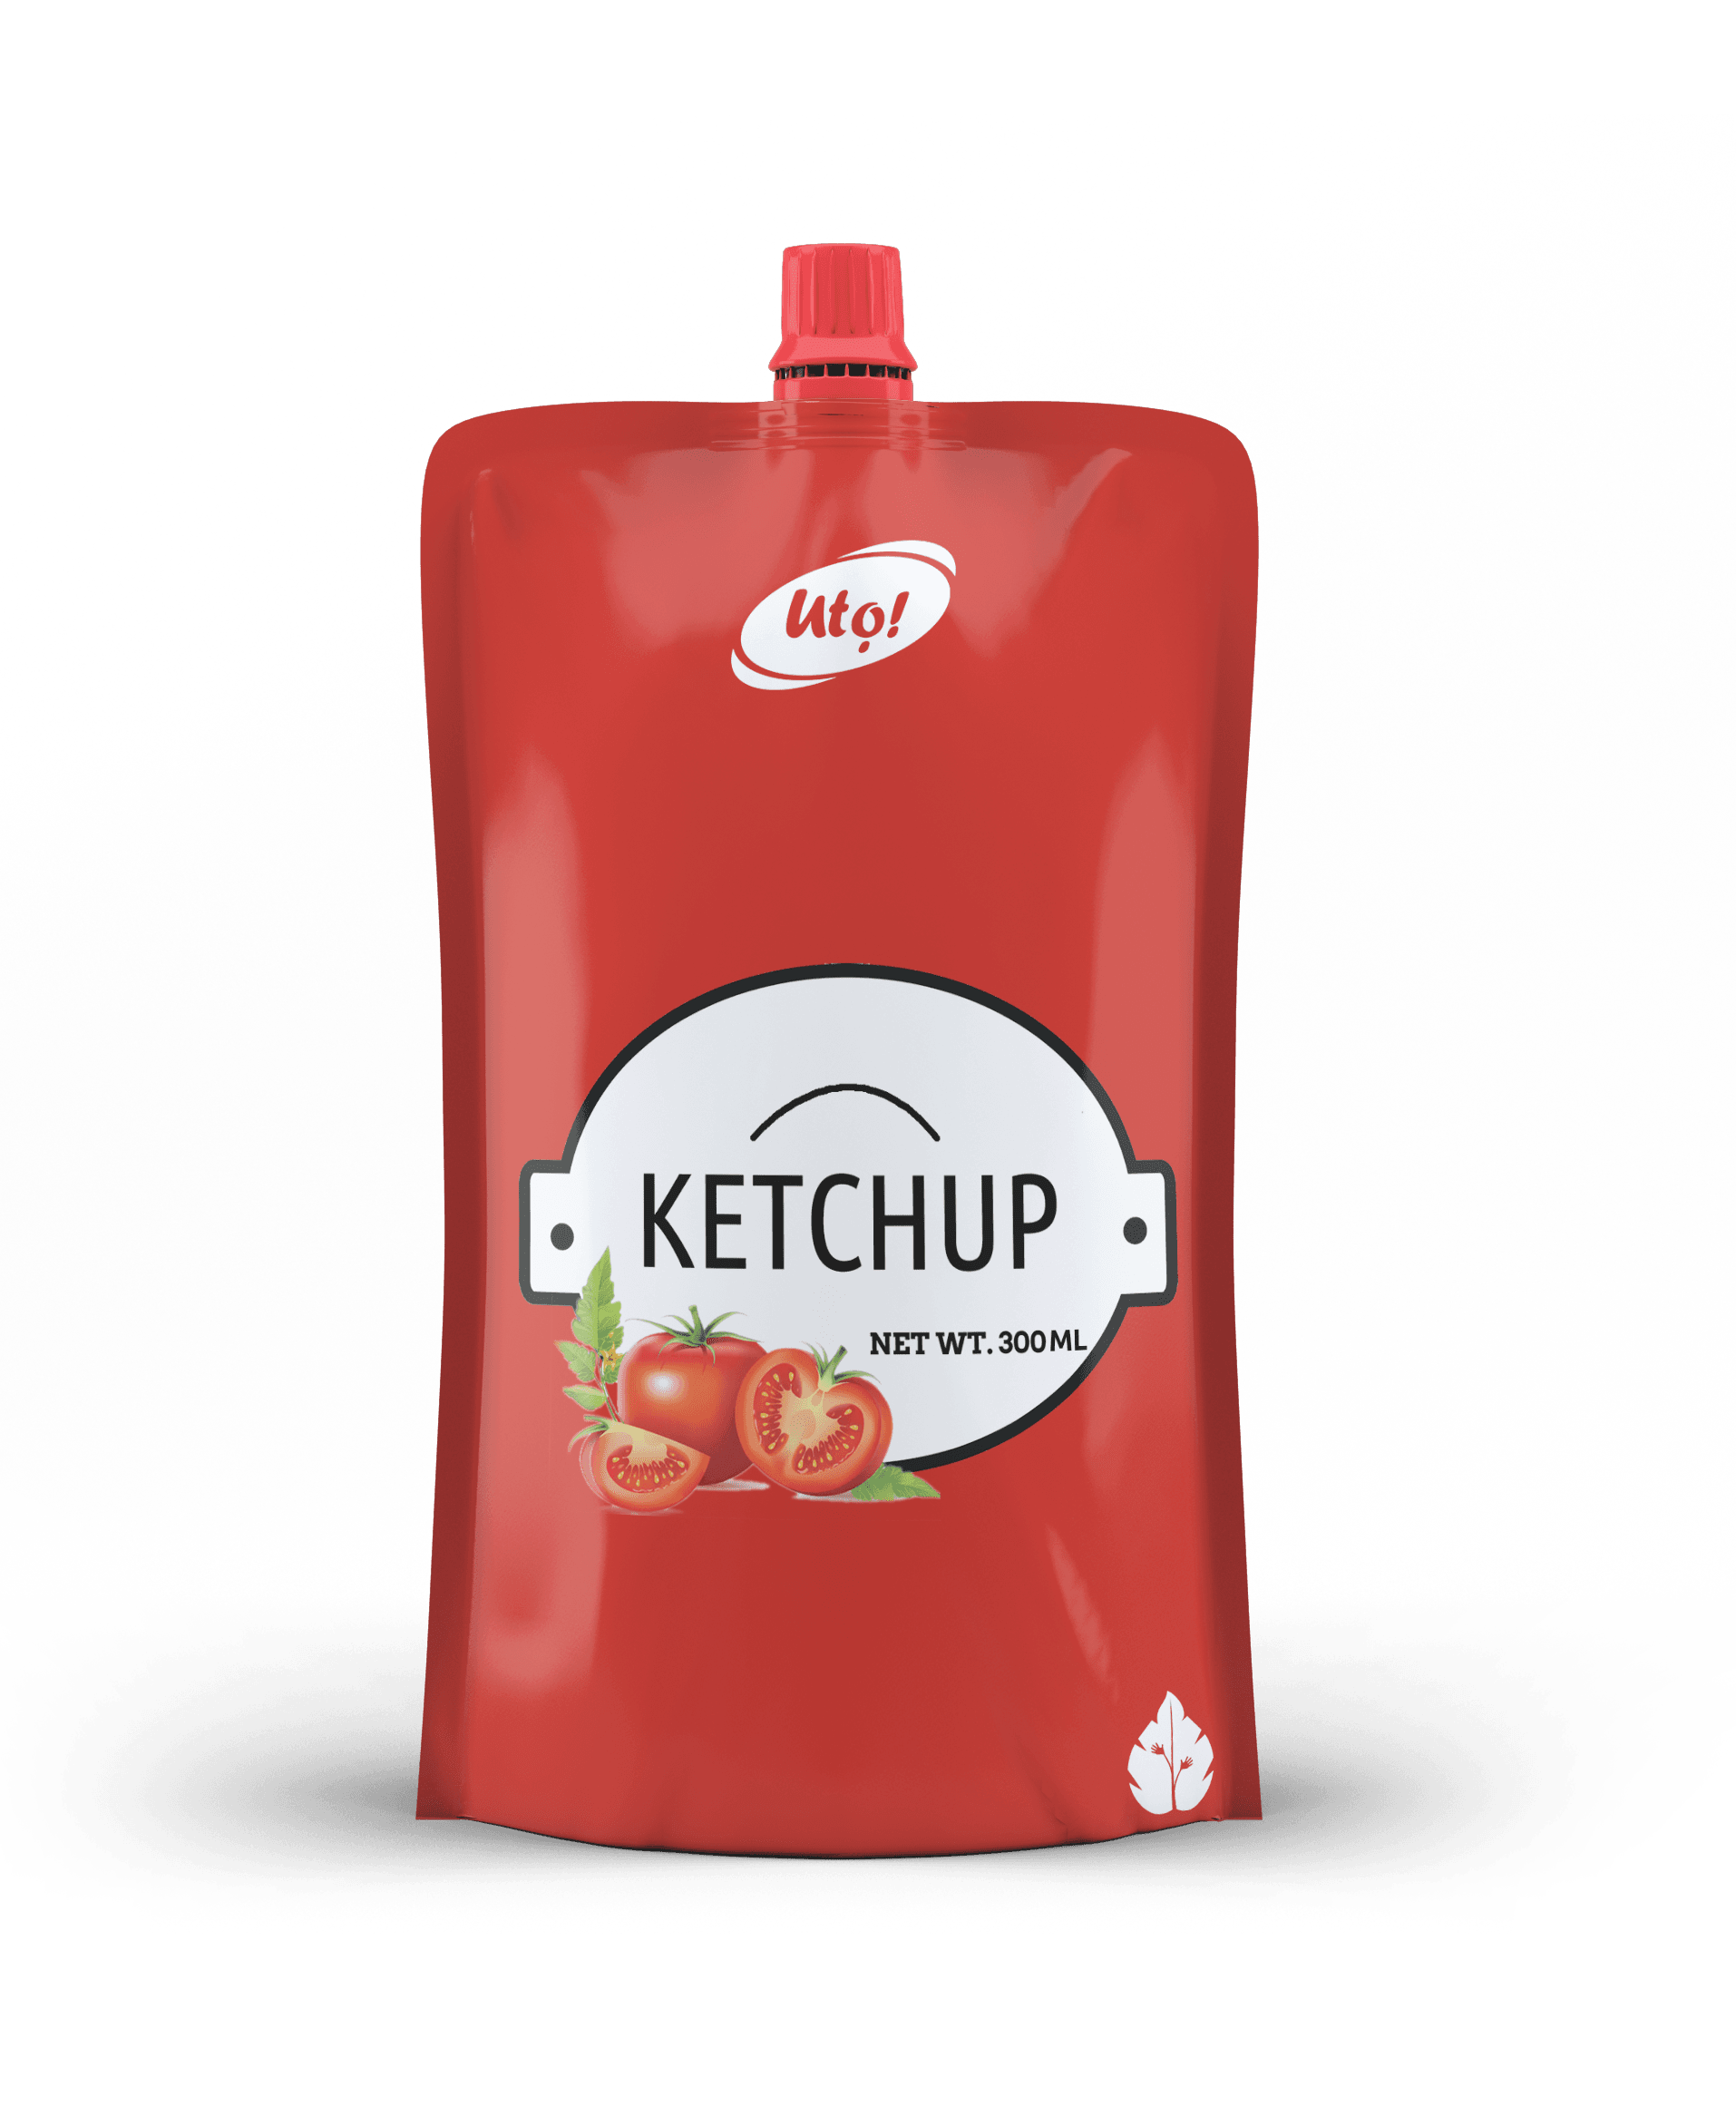 UTO! Ketchup - The Agric&Culture Company